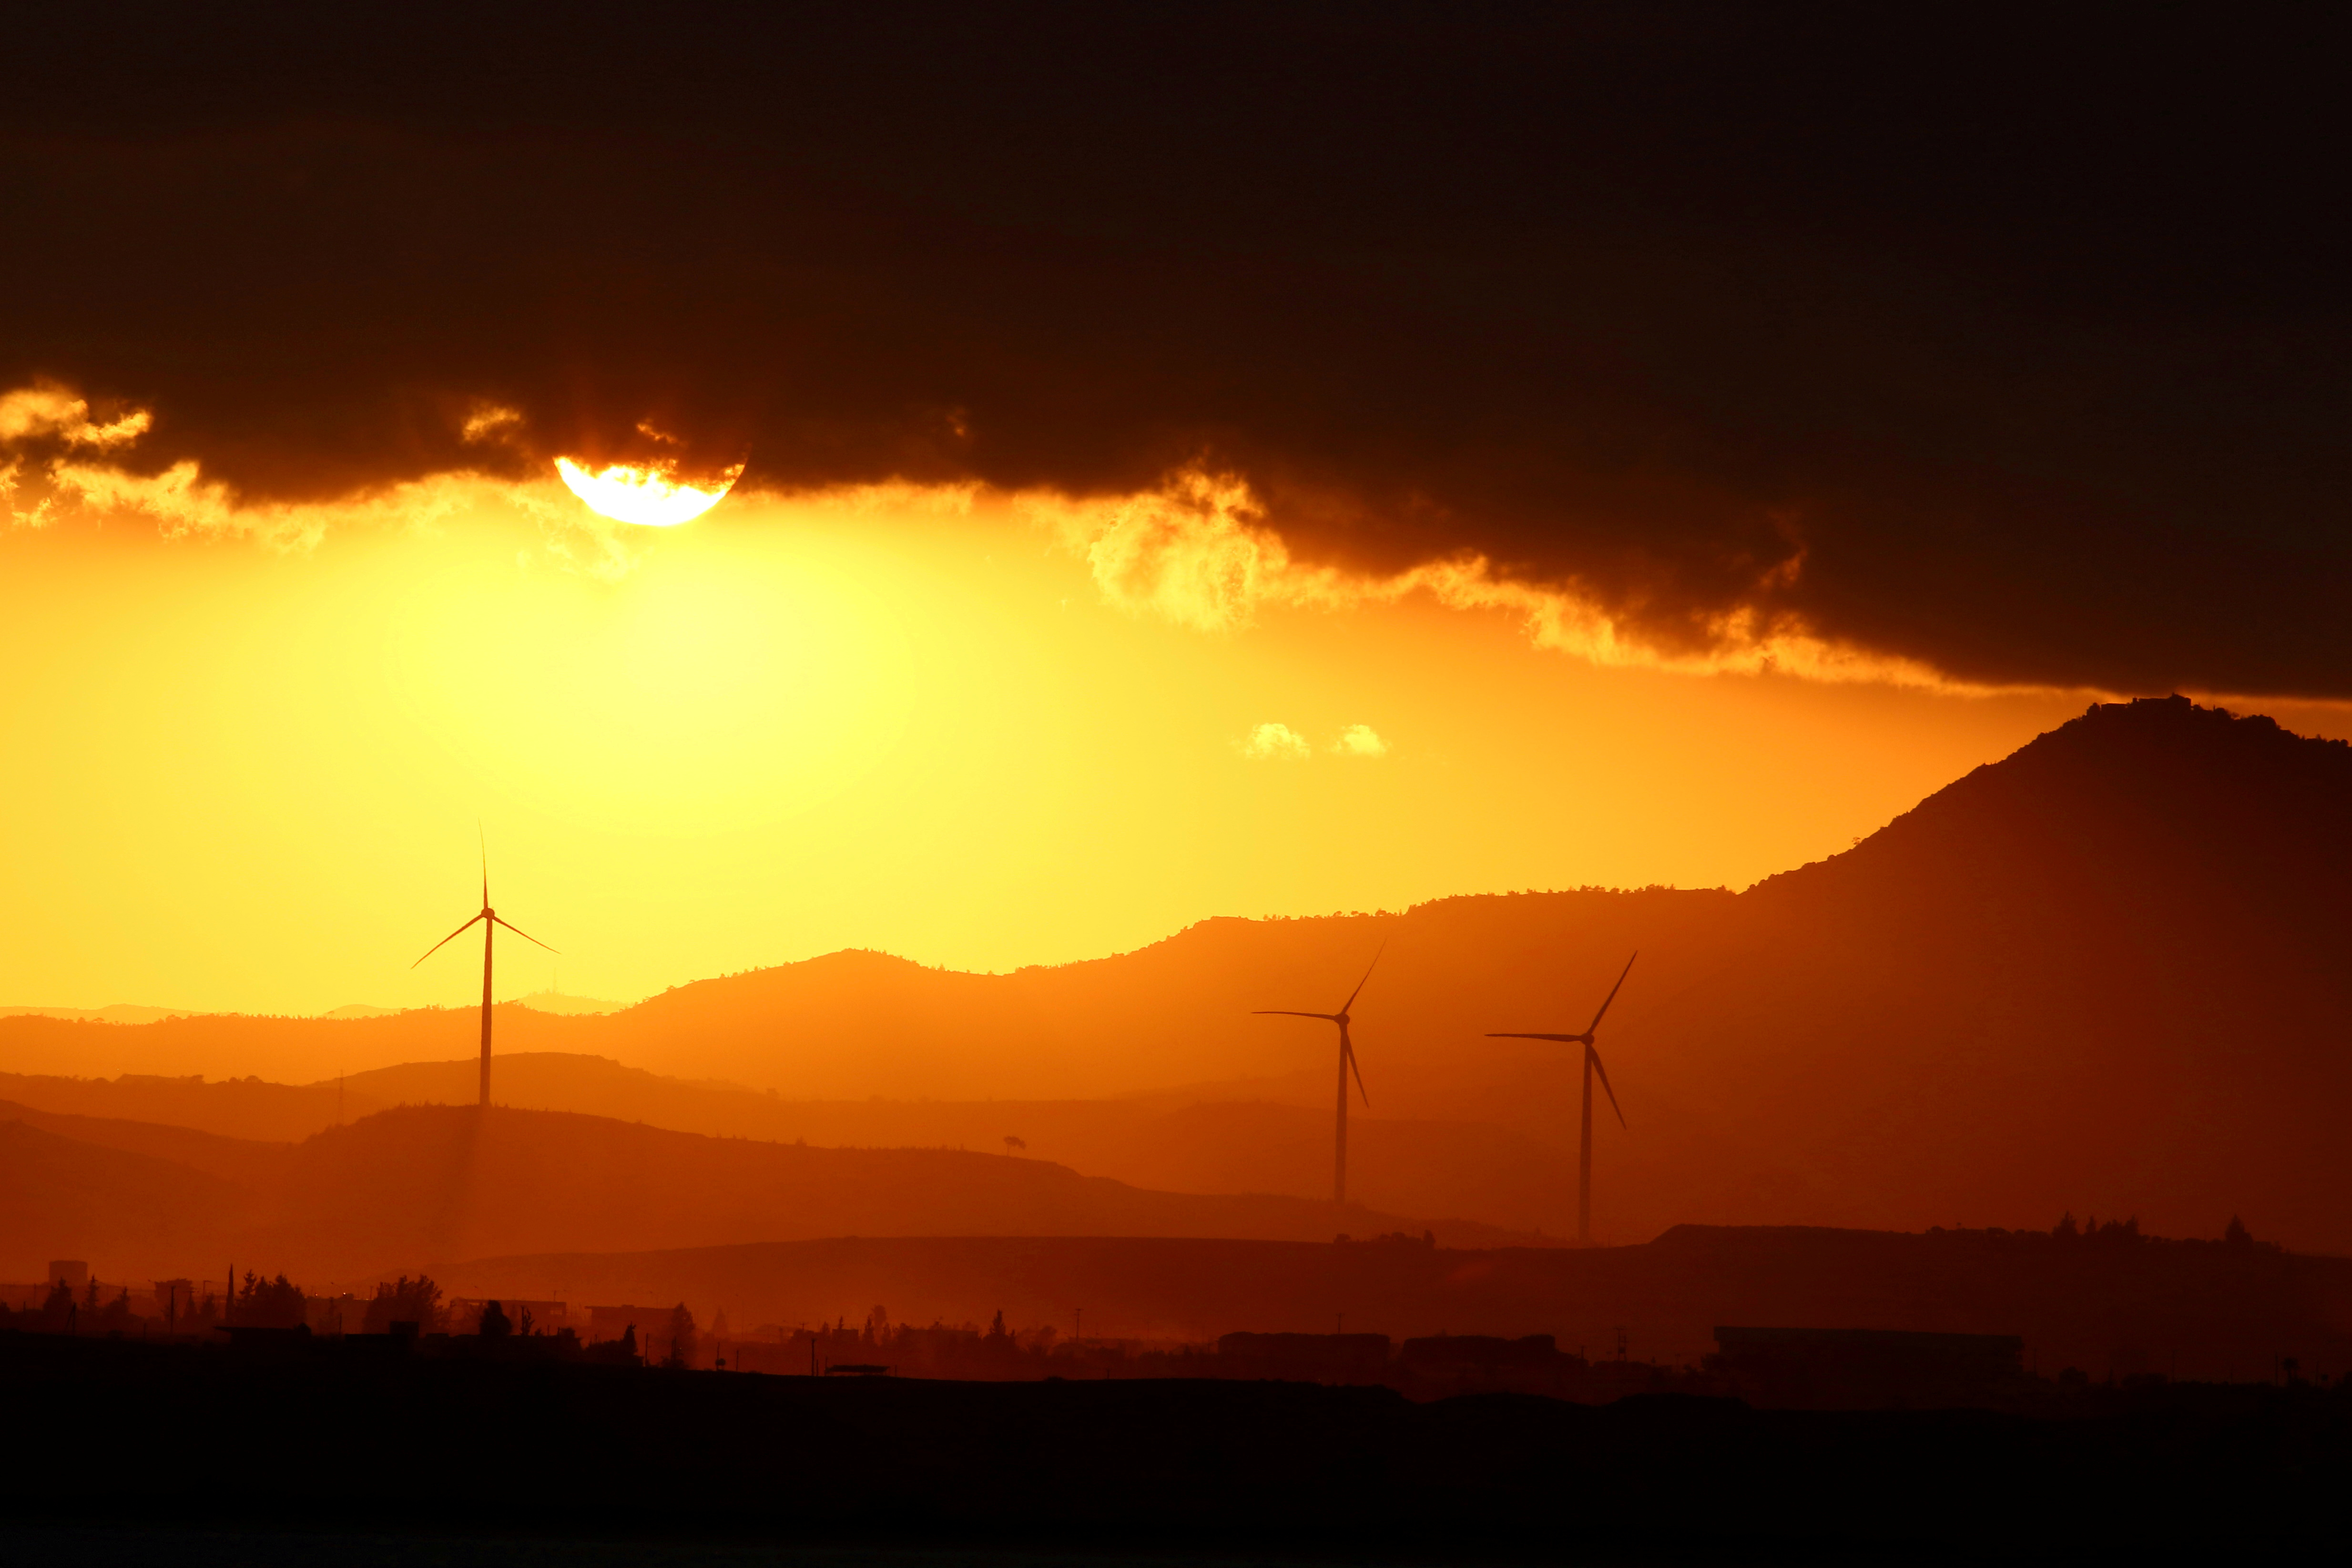 Power-generating windmill turbines are pictured during the sunset near Larnaca, Cyprus September 30, 2017. REUTERS/Yiannis Kourtoglou